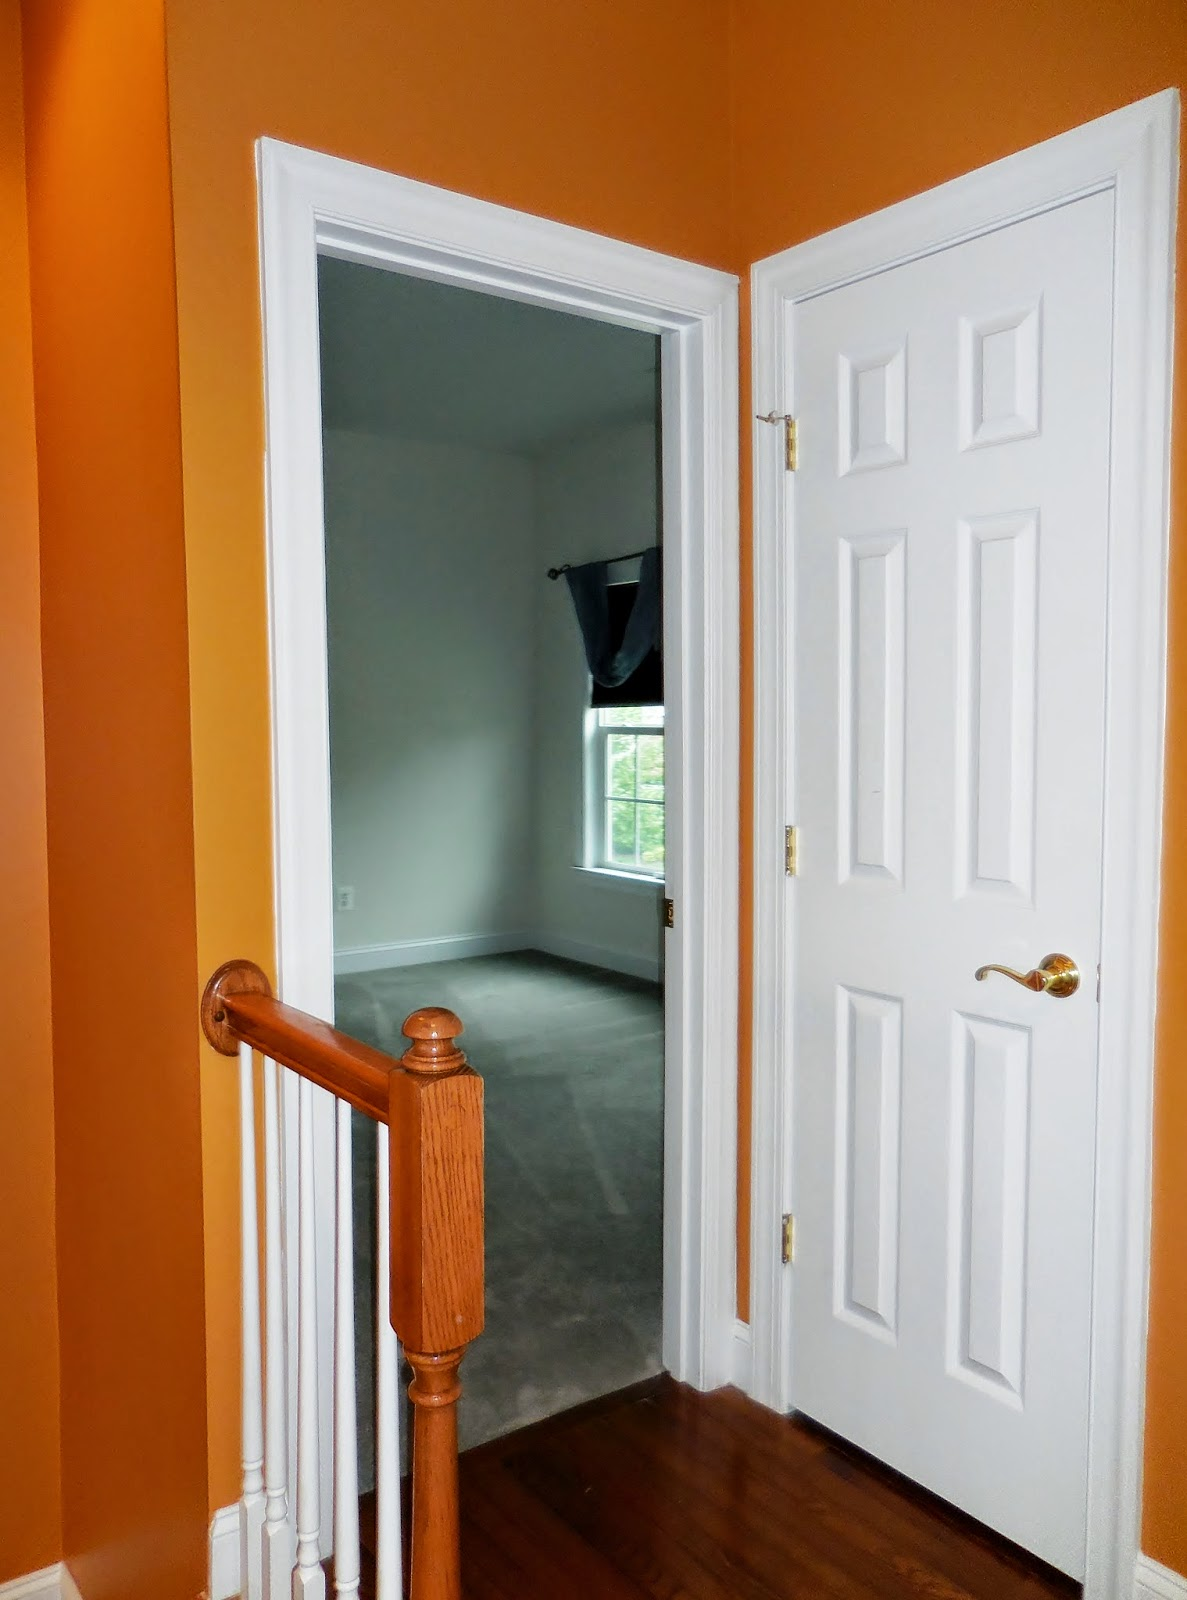 """This Canterbury impresses upon entry with an amazing foyer with gorgeous arched openings, and a formal living and dining room. An open kitchen and Family room, private study and large family foyer make the main level just right for families of all sizes. Absolutely amazing views of the mountains far away from the back windows.    Key Home Features Separate Living Room & Dining Room Large Breakfast Area off of Kitchen Butler's Pantry Main Level Study Each Bedroom with Own Walk In Closet  Lansdowne on the Potomac, Leesburg Real Estate Lansdowne is an unincorporated residential planned, resort-style community, located near Leesburg, Virginia, north of Route 7 and south of the Potomac River, approximately 25 miles west of Washington, D.C. A master association, the Conservancy, umbrellas the major properties held in common, and oversees separate homeowners associations (""""HOA's"""") for each project, all run separately. Under the Conservancy, there are 3 major HOA's: Lansdowne on the Potomac, Village Greens, and Leisure World. Additionally, there are smaller HOA's for the lands held in common that include office and retail space, as well as other services, creating a complete town center under the area called Lansdowne. With the additional presence of the luxurious Lansdowne Resort, residents enjoy a country club style of living with the convenience of shopping and services, making it a prized location in Loudoun County.  Developed in the late 90's on former plantation land rich in history, one of the principal HOA's, Lansdowne on the Potomac, is fully built out and has 2,155 homes on site; 1,442 are detached homes and 713 attached single-family homes. The Lansdowne on the Potomac HOA is professionally managed by Community Management Corporation of Chantilly, VA. Four main residential areas were developed in phases by different developers: """"Coton Commons,"""" """"River Oaks,"""" """"The Highlands;"""" and""""West Goose Creek."""" Avoiding a cutter-cutter look, a variety of builders are sprinkled"""